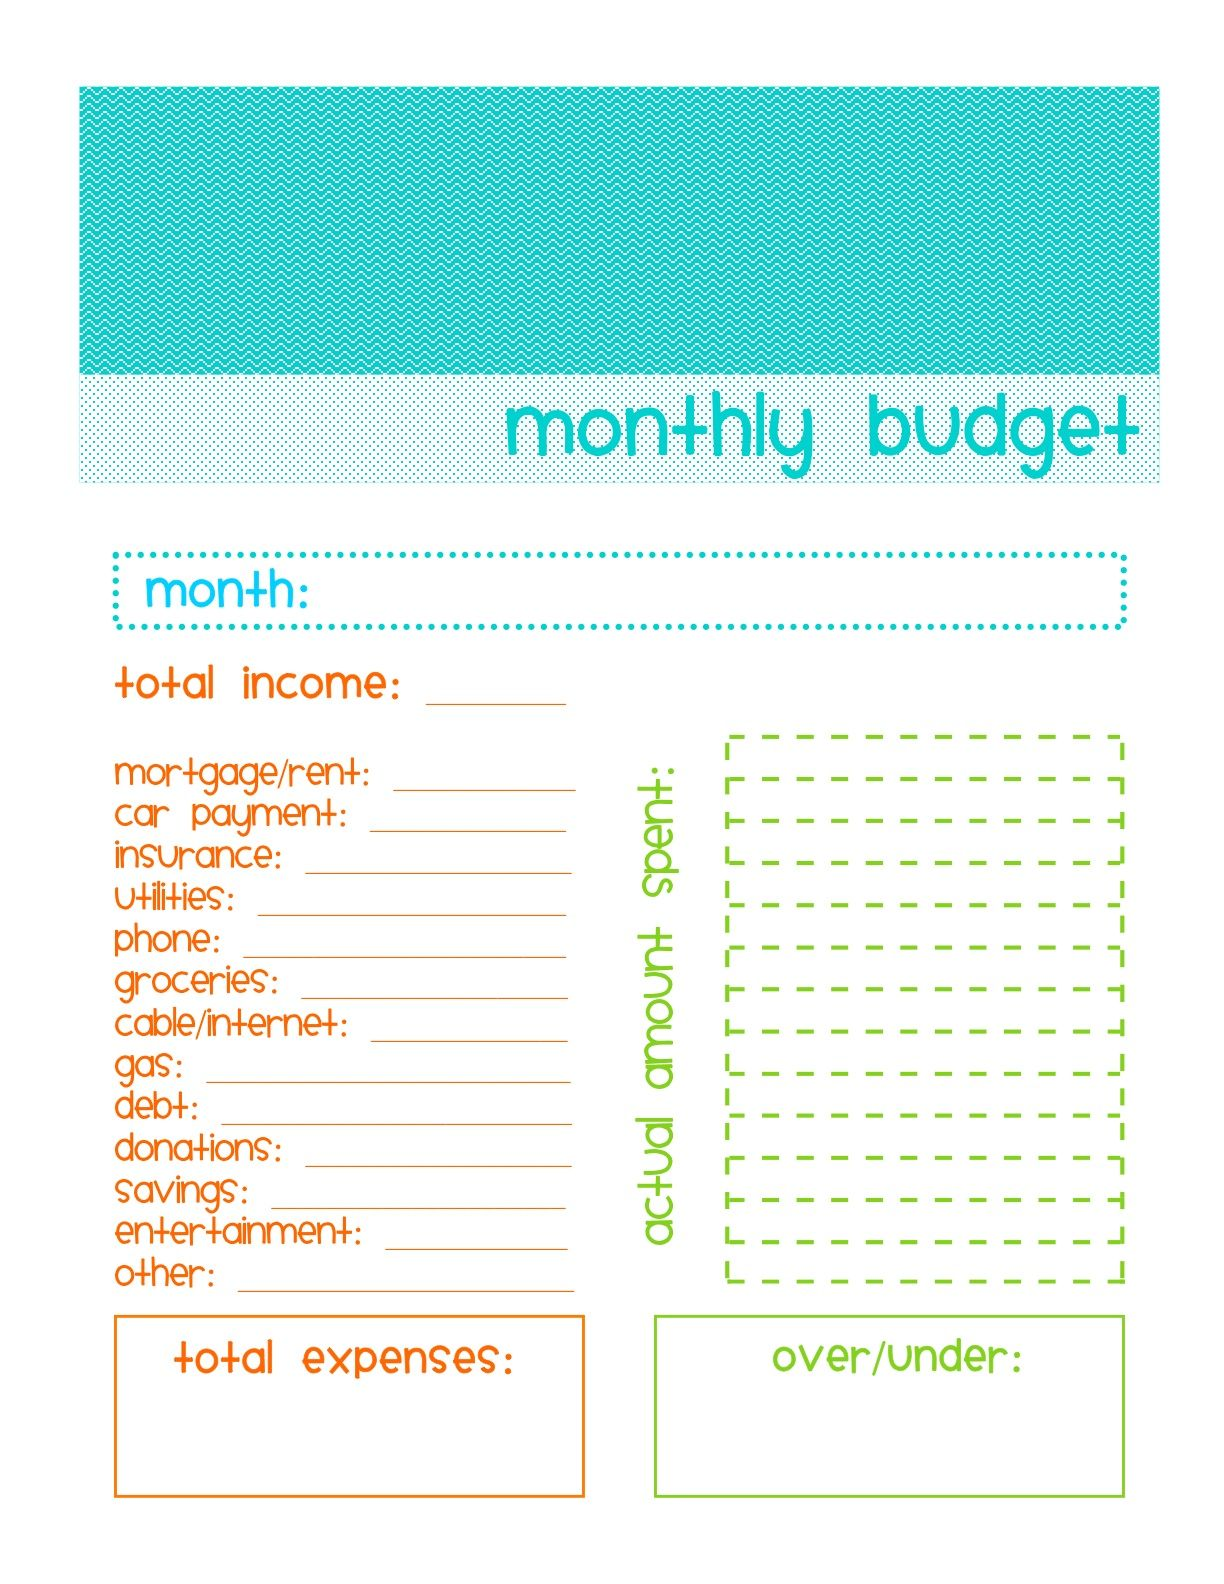 Worksheets Simple Monthly Budget Worksheet simple budget template printable join the conversation cancel monthly sheet inspiration